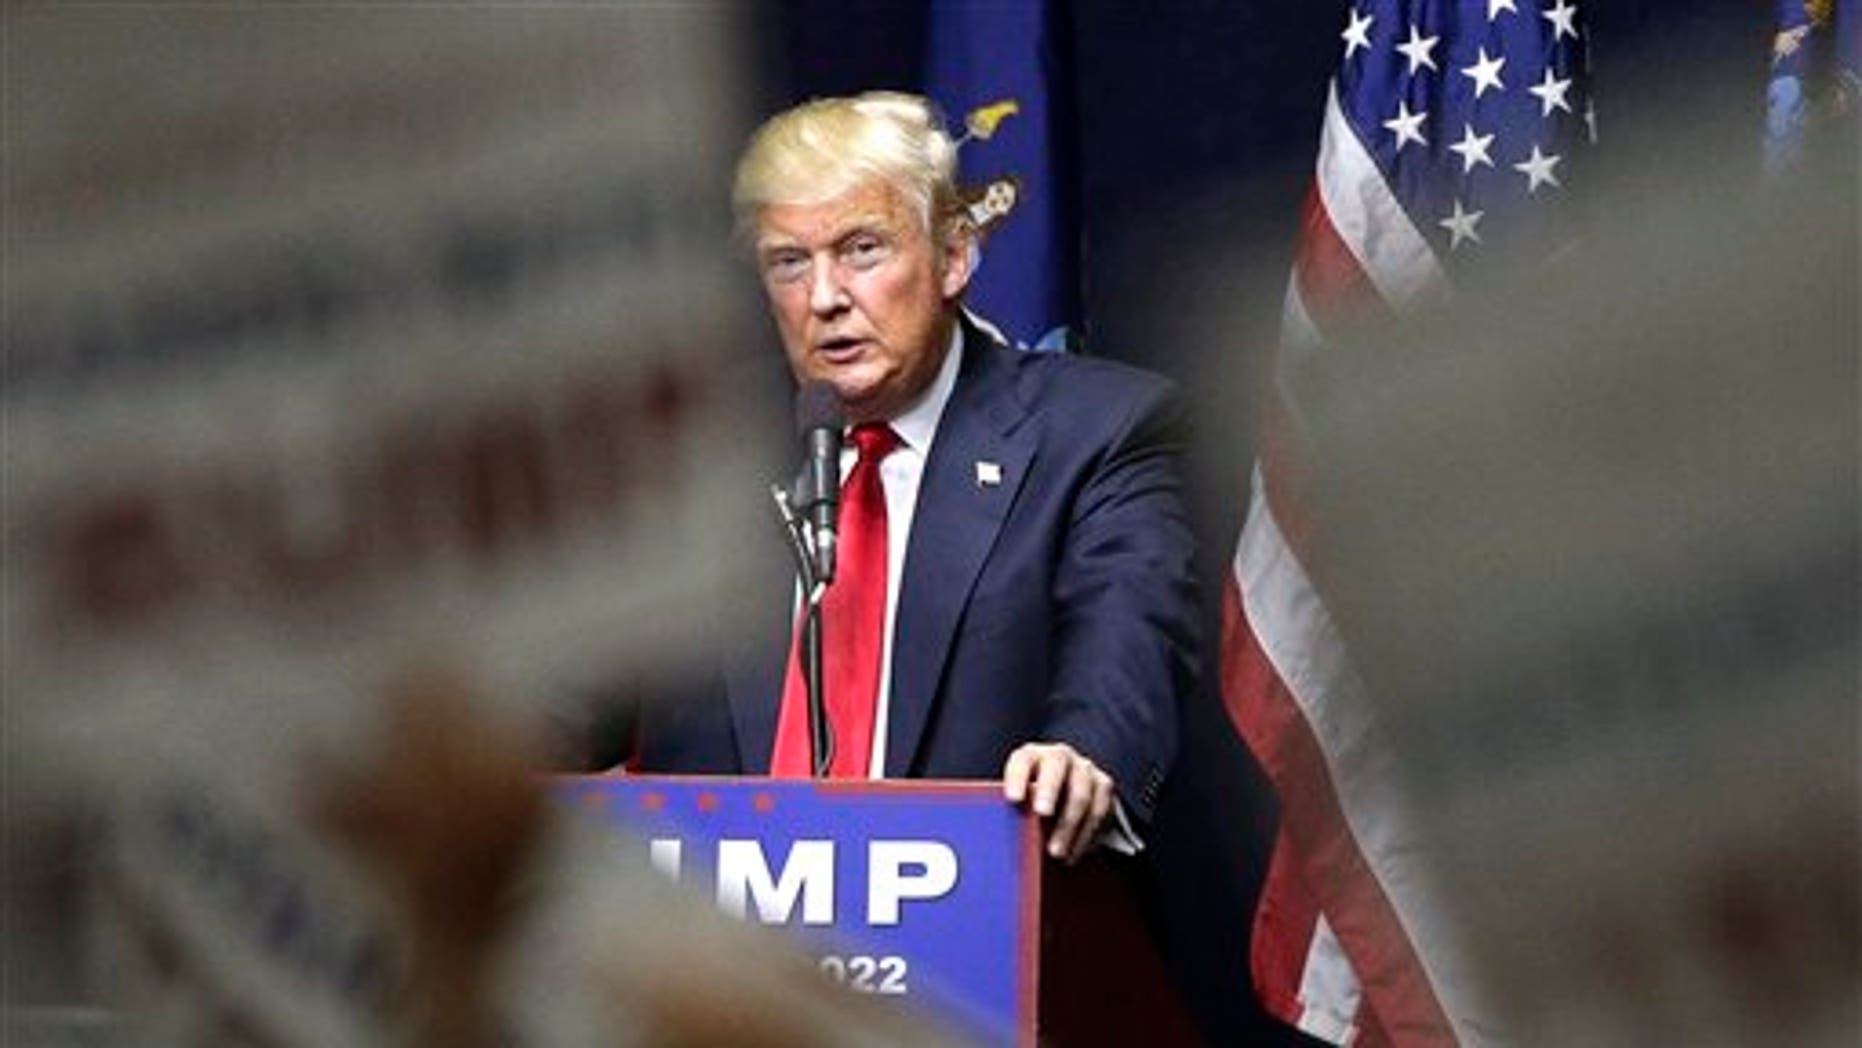 Republican presidential candidate Donald Trump speaks during a campaign rally, Wednesday, April 6, 2016, in Bethpage, N.Y. (AP Photo/Julie Jacobson)